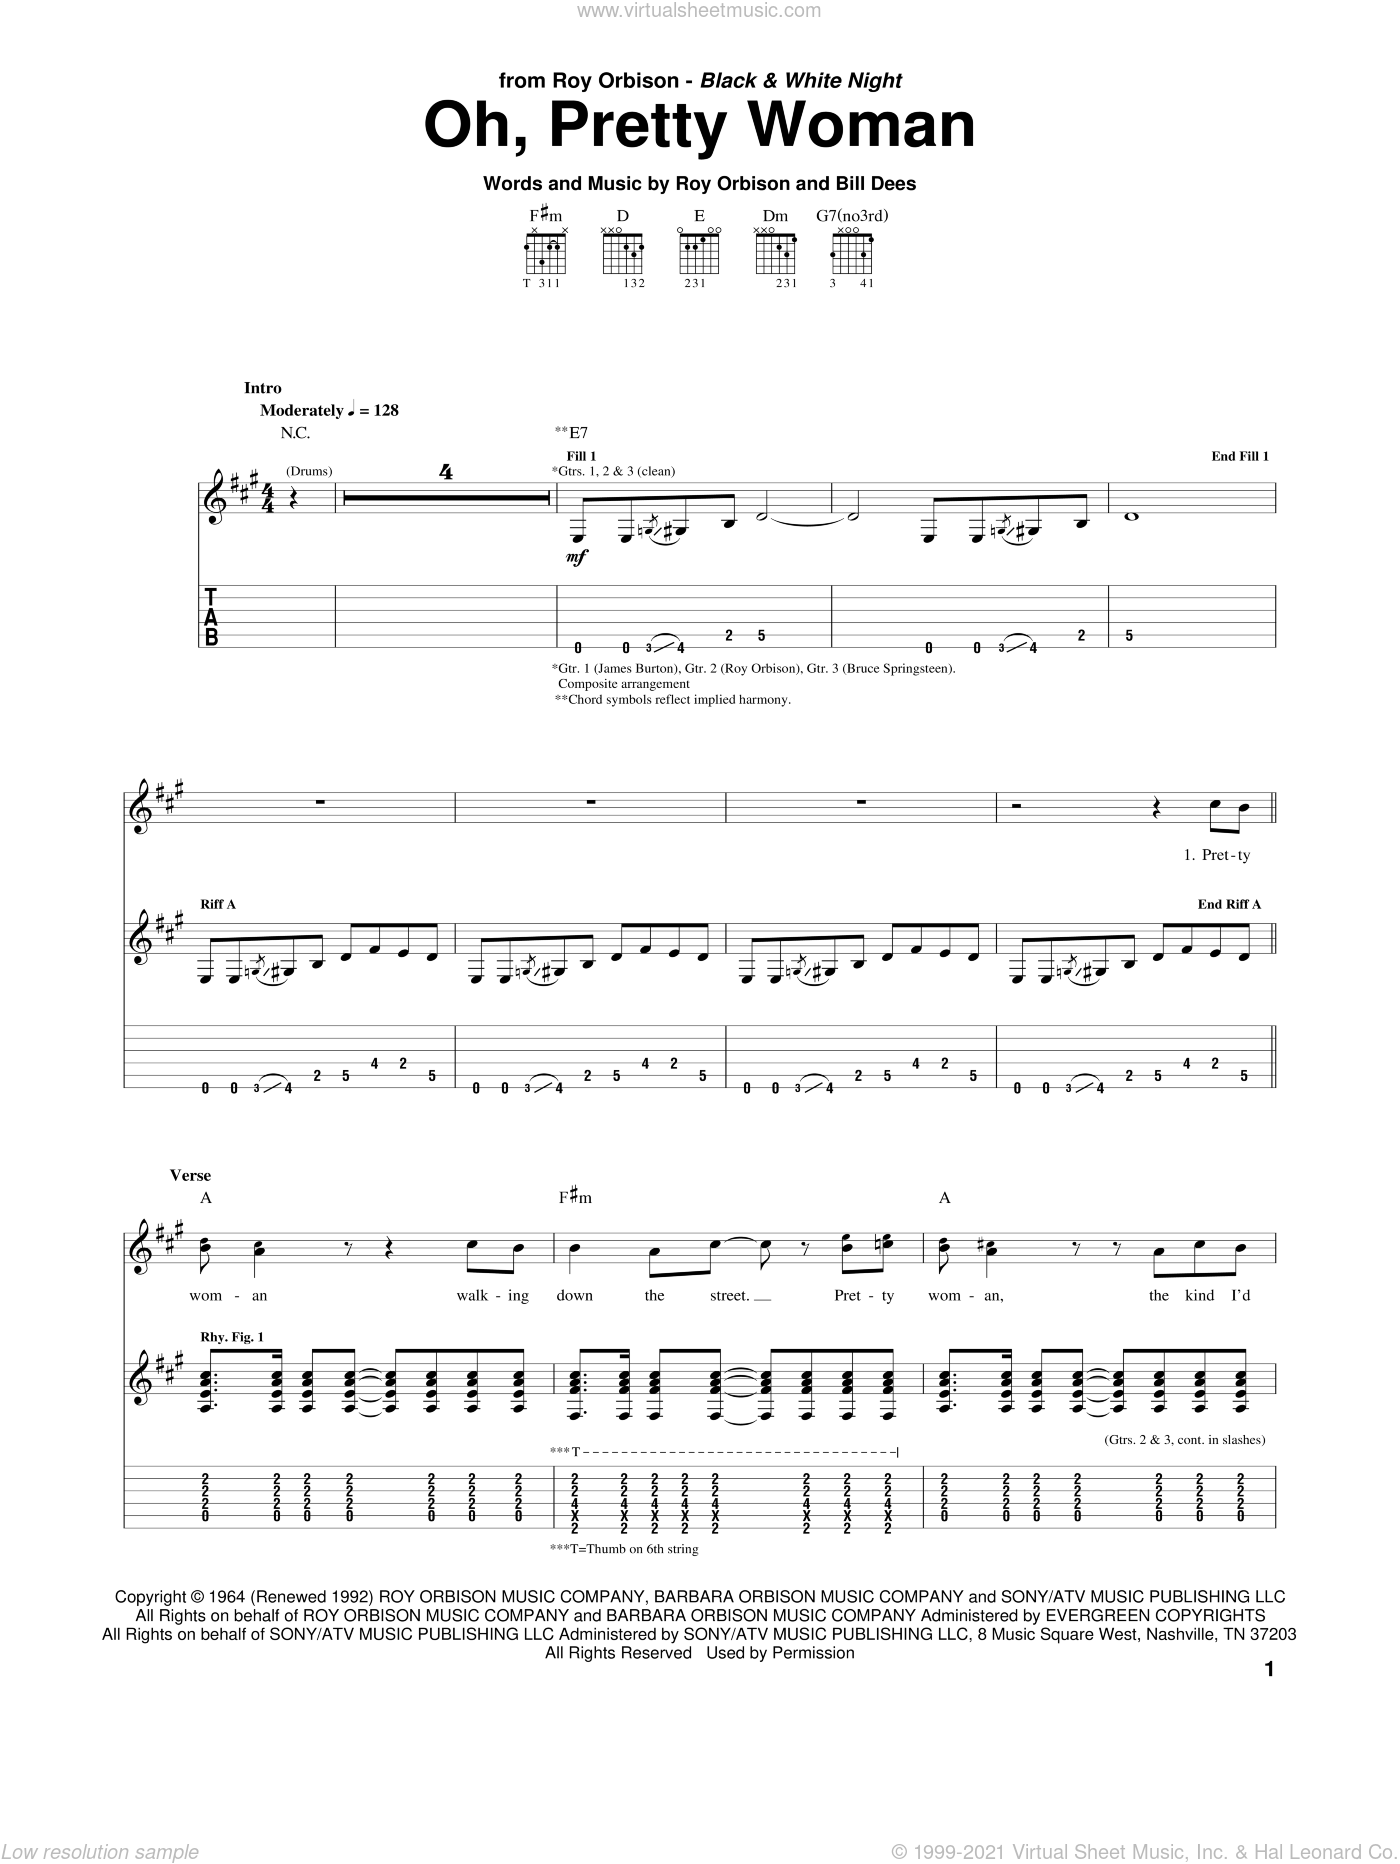 Oh, Pretty Woman sheet music for guitar (tablature) by Roy Orbison, Bill Dees and Edward Van Halen, classical score, intermediate skill level